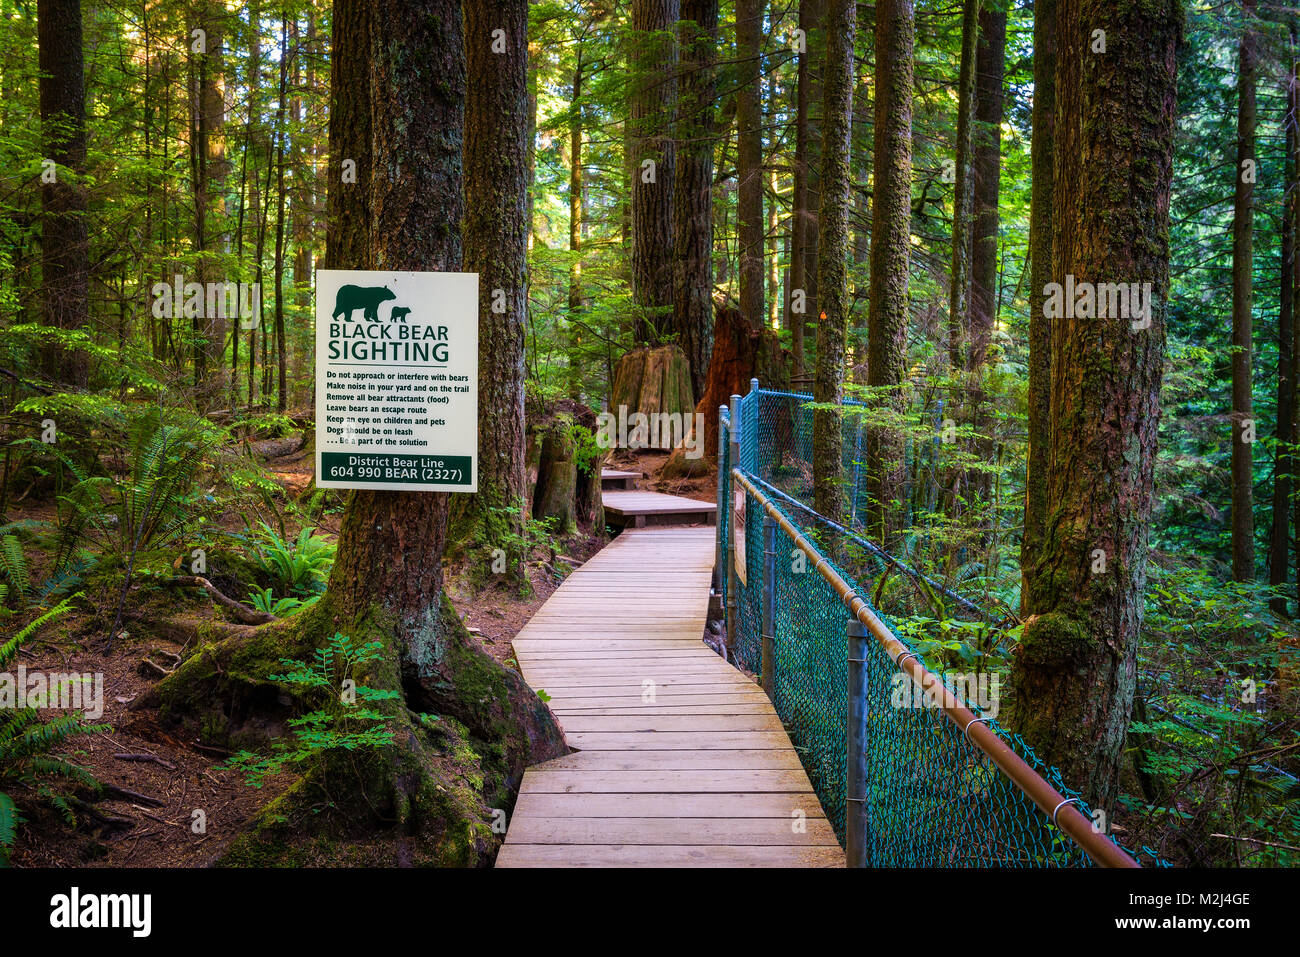 Black Bear Sighting  warning sign - Stock Image